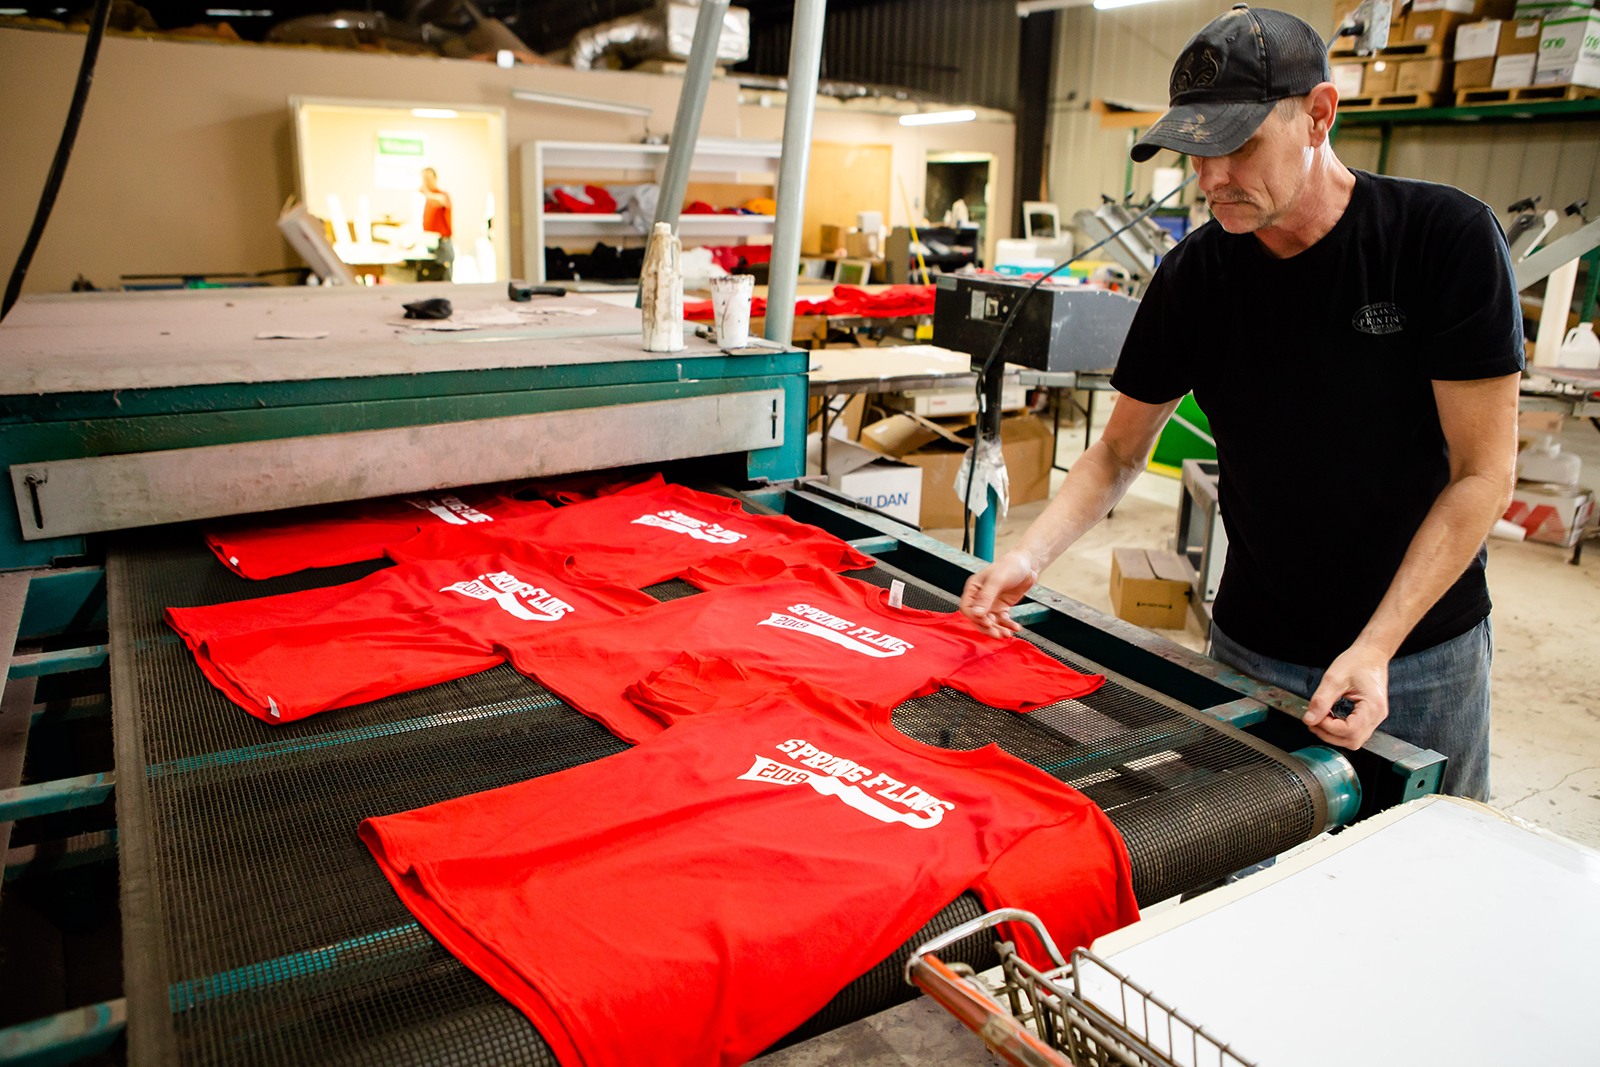 Screen print apparel - Do you have a brilliant t-shirt idea? Our fully automated M& R press ensures the highest quality at wholesale prices with a production capability of 200+ shirts per hour and up to 8 colors!Looking to print a low quantity? Our manual presses allow us to print quantities as low as 12 pieces right here in the shop. We would love to make your business, team, or retail apparel dreams a reality.